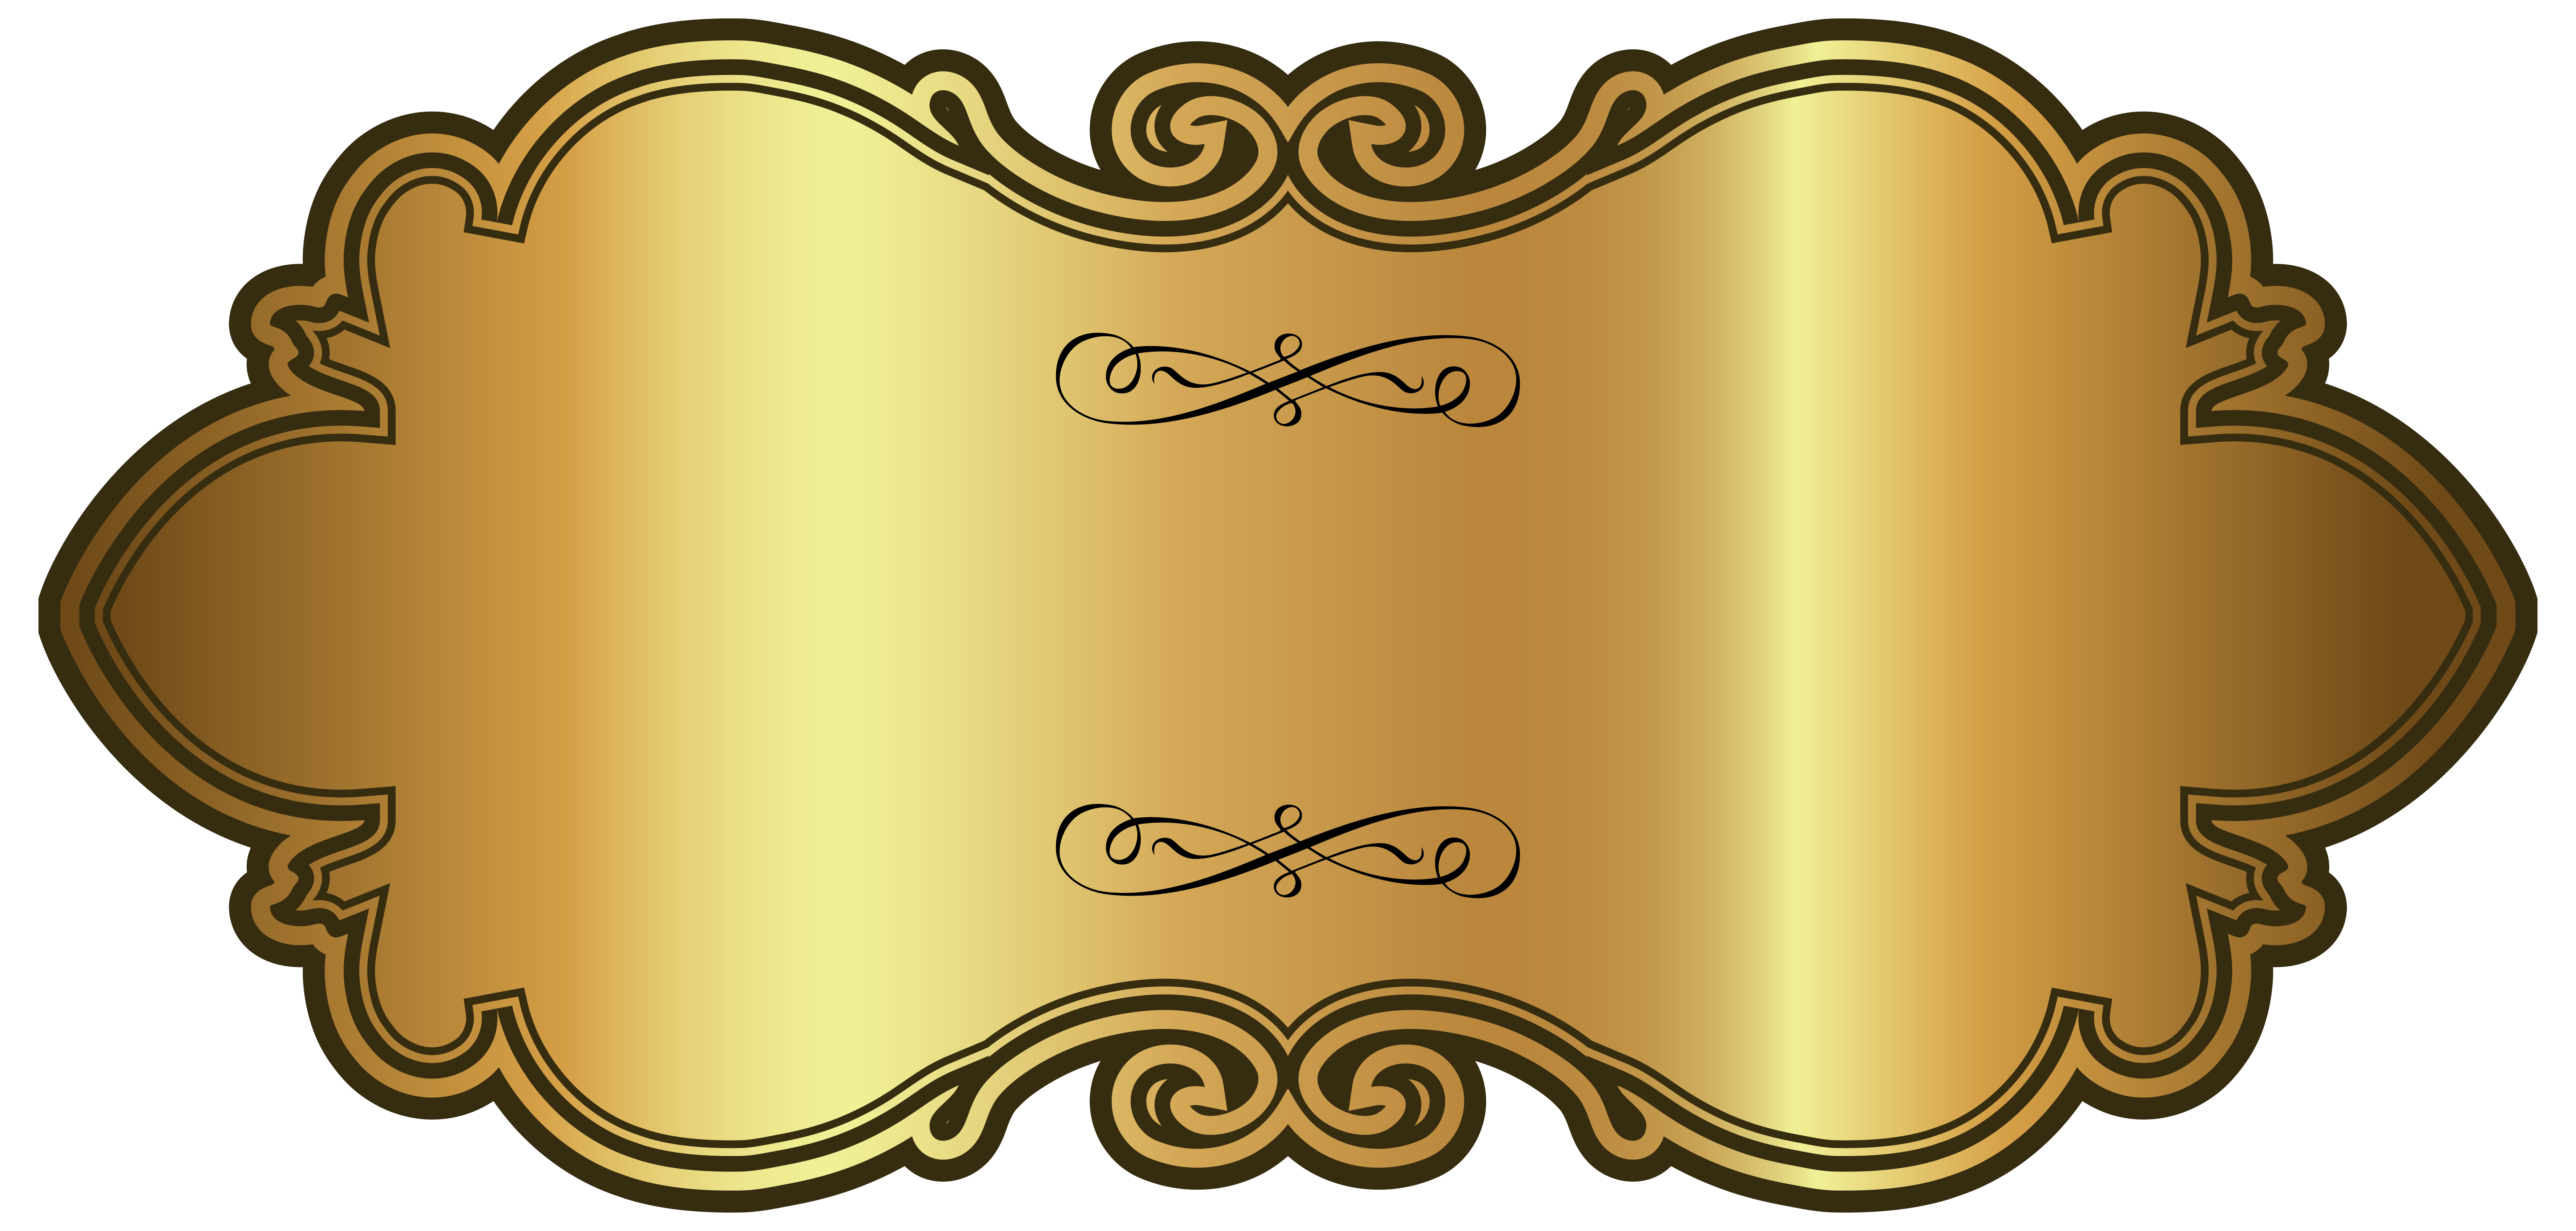 Golden Luxury Label Template PNG Clipart Image.